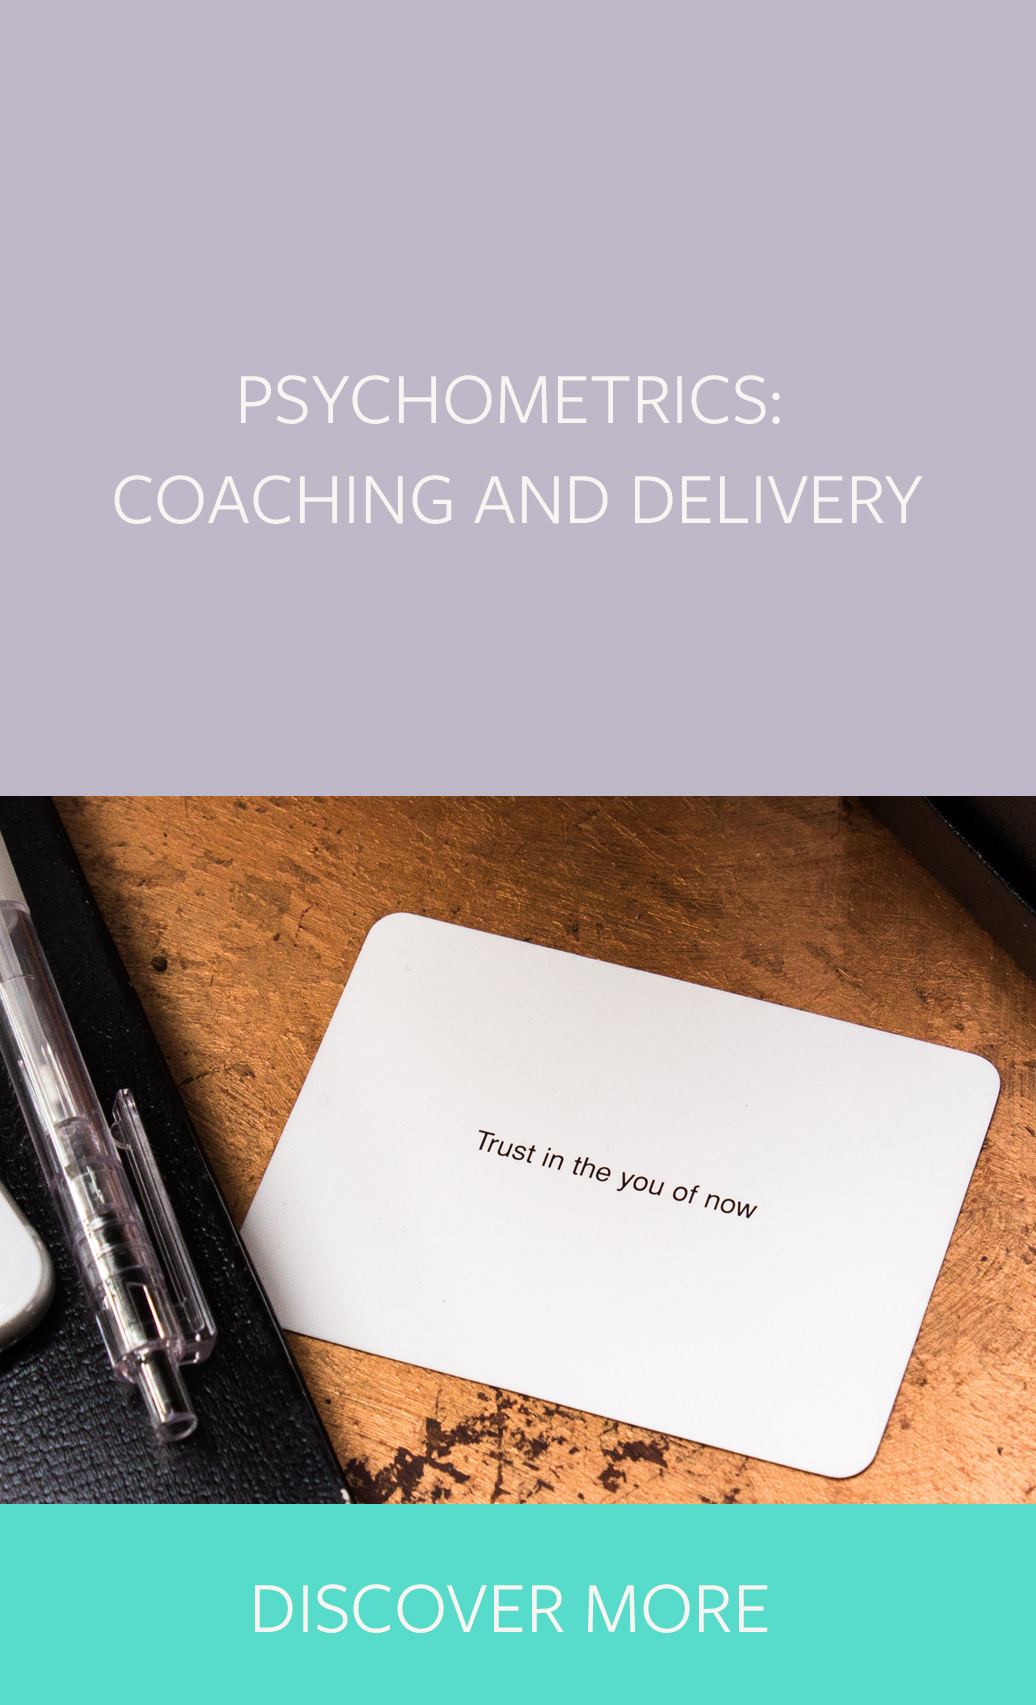 Psychometrics coaching and delivery